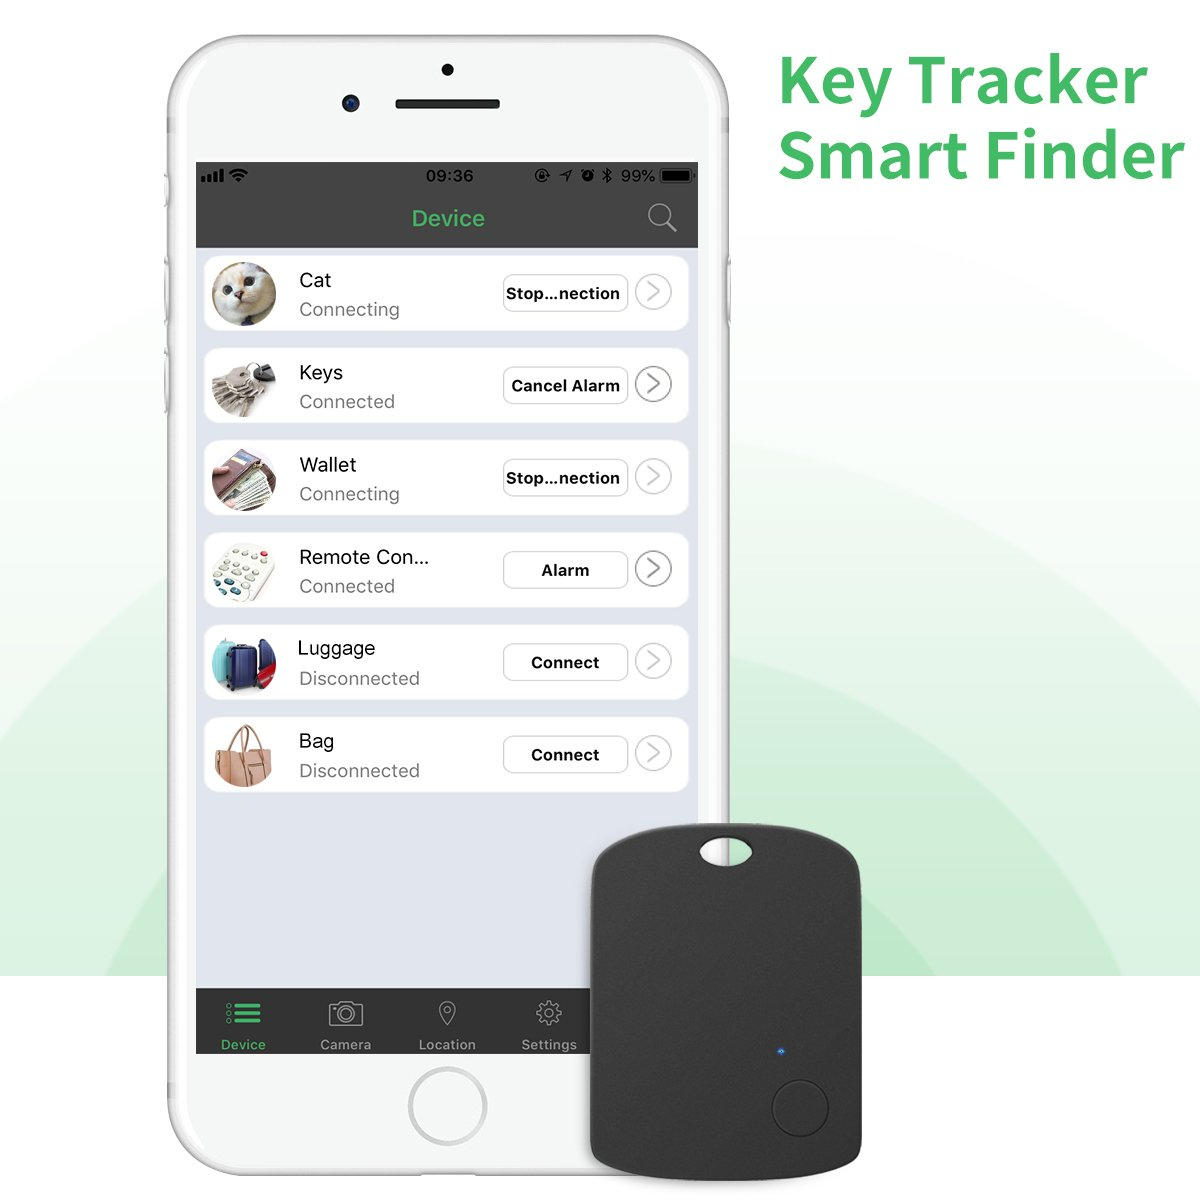 Key Finder, CC-Show Wireless GPS Phone Locator, Smart Wallet Tracker, Anything Anti Lost Alarm with Selfie Shutter/Remote Control for iOS/Android App, Shield Shape (Black)